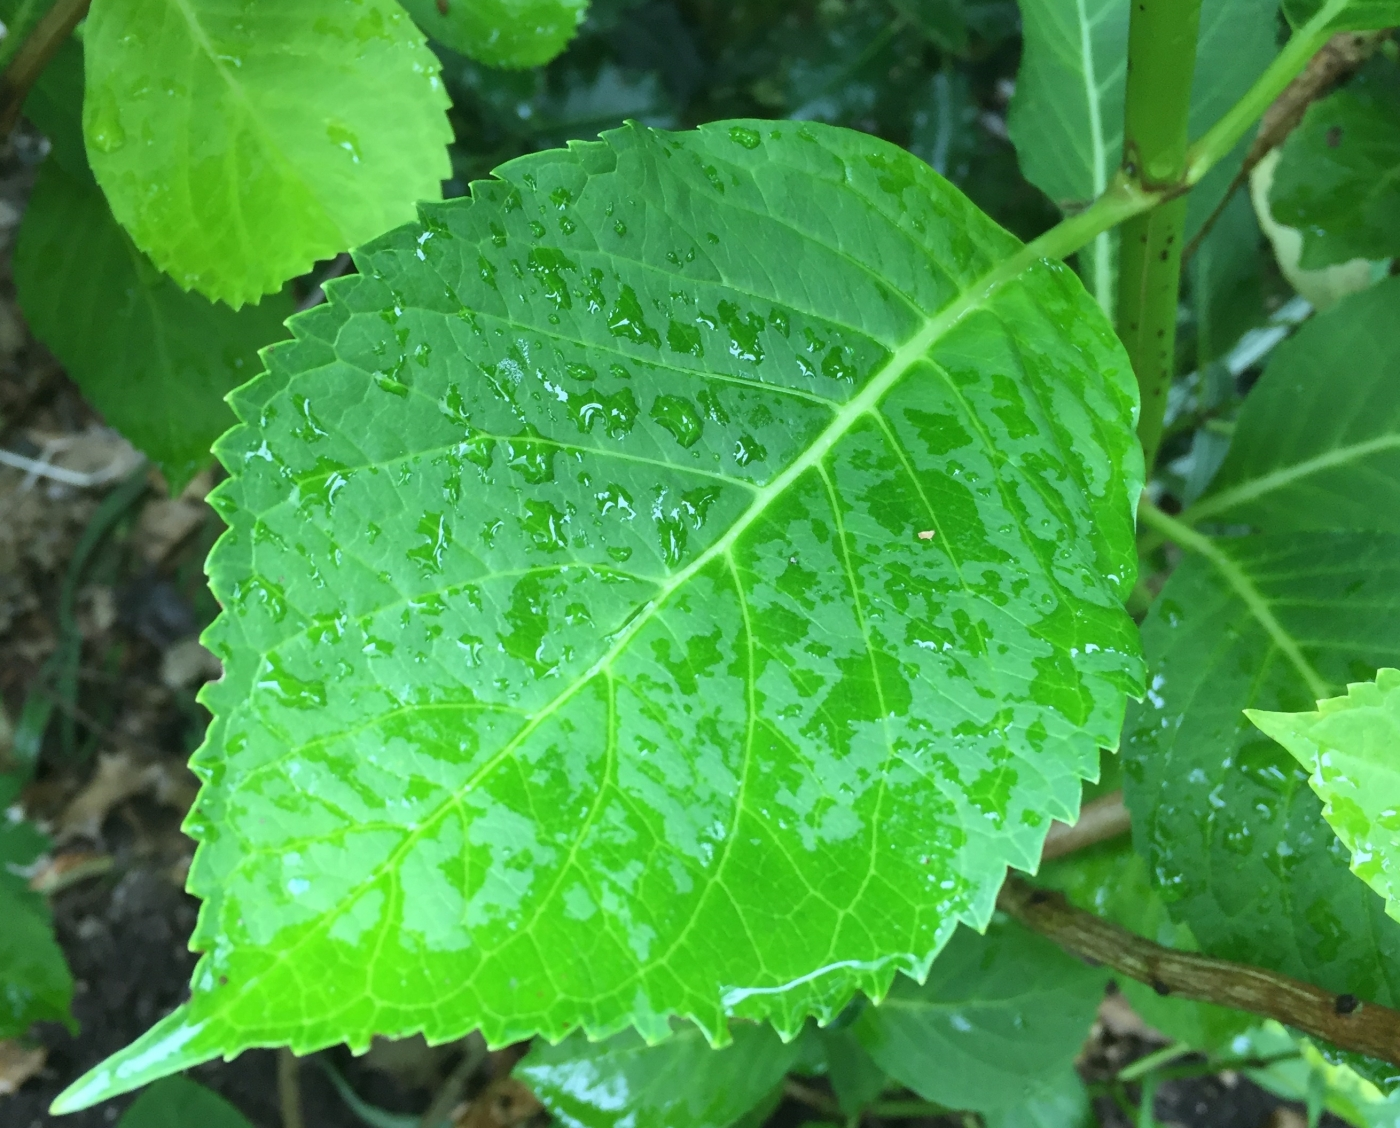 Large leaf plants like hydrangea can act as an umbrella for rainfall.